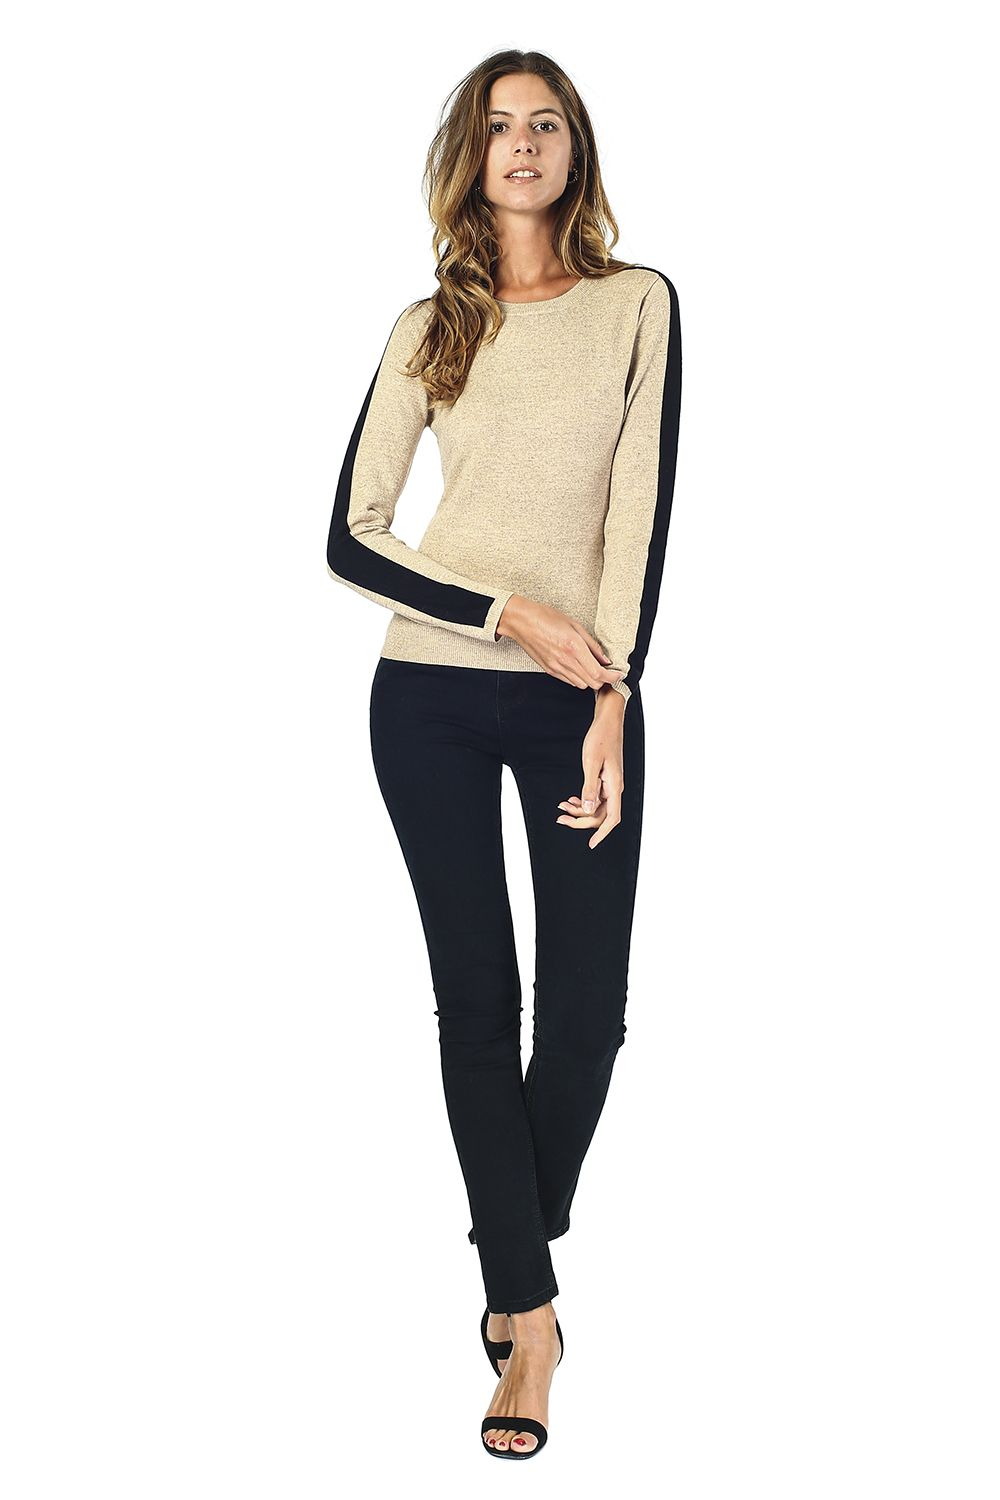 William De Faye Round Neck Sweater with Two-tone Sleeves in Beige